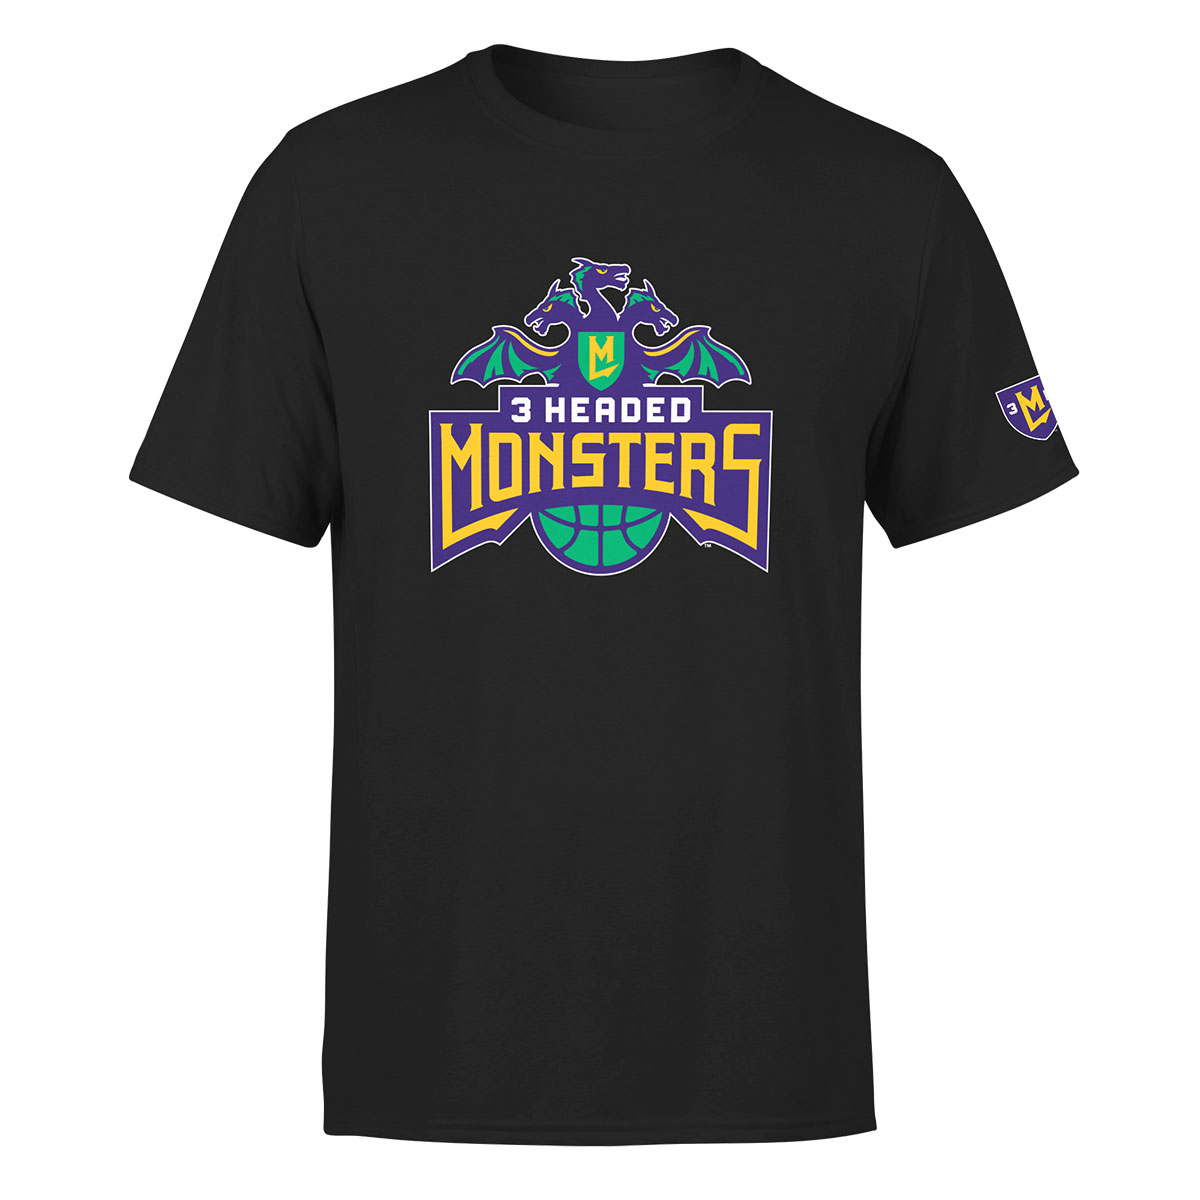 BIG3 3 HEADED MONSTER BLACK T-SHIRT